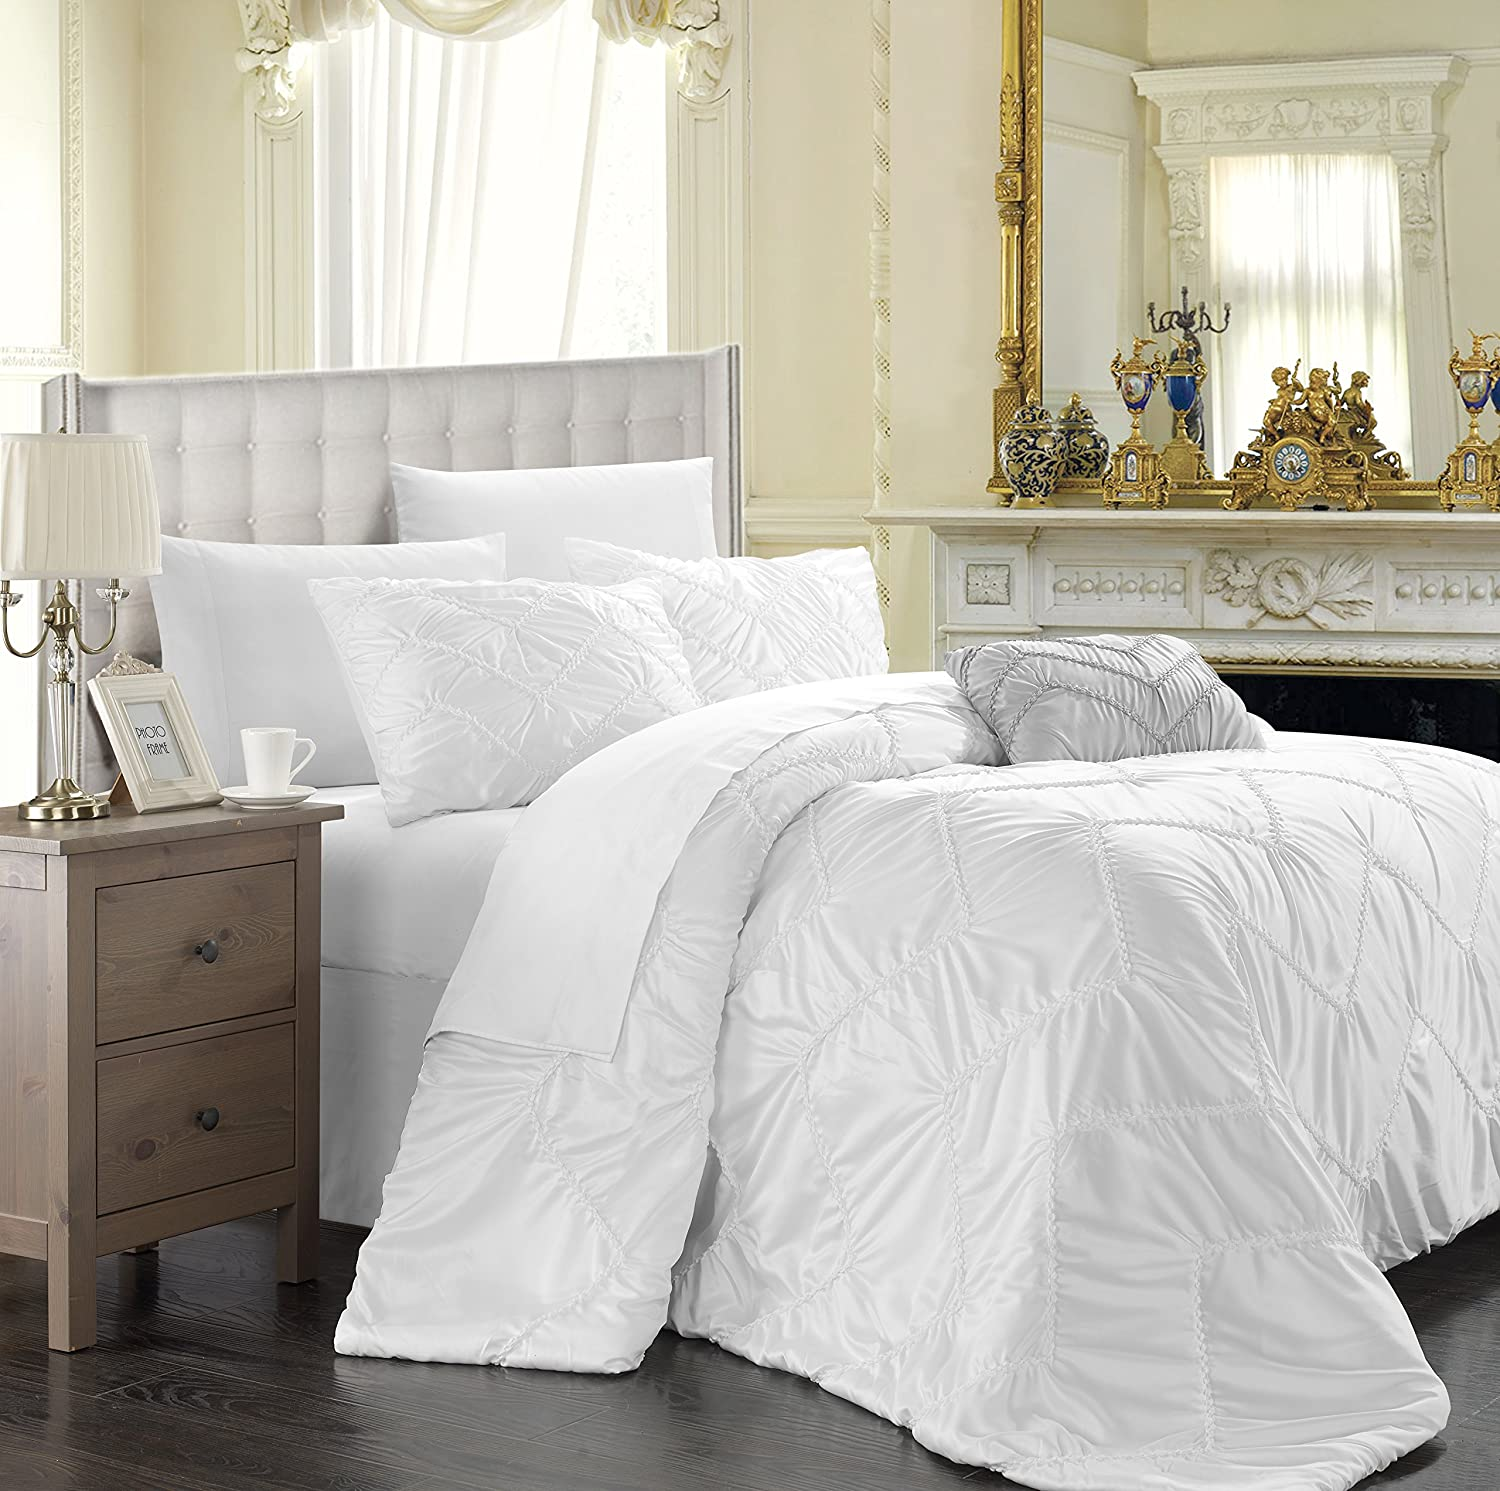 Amazon.com: Chic Home Isabella 4-Piece Duvet Cover Set, King, White ...